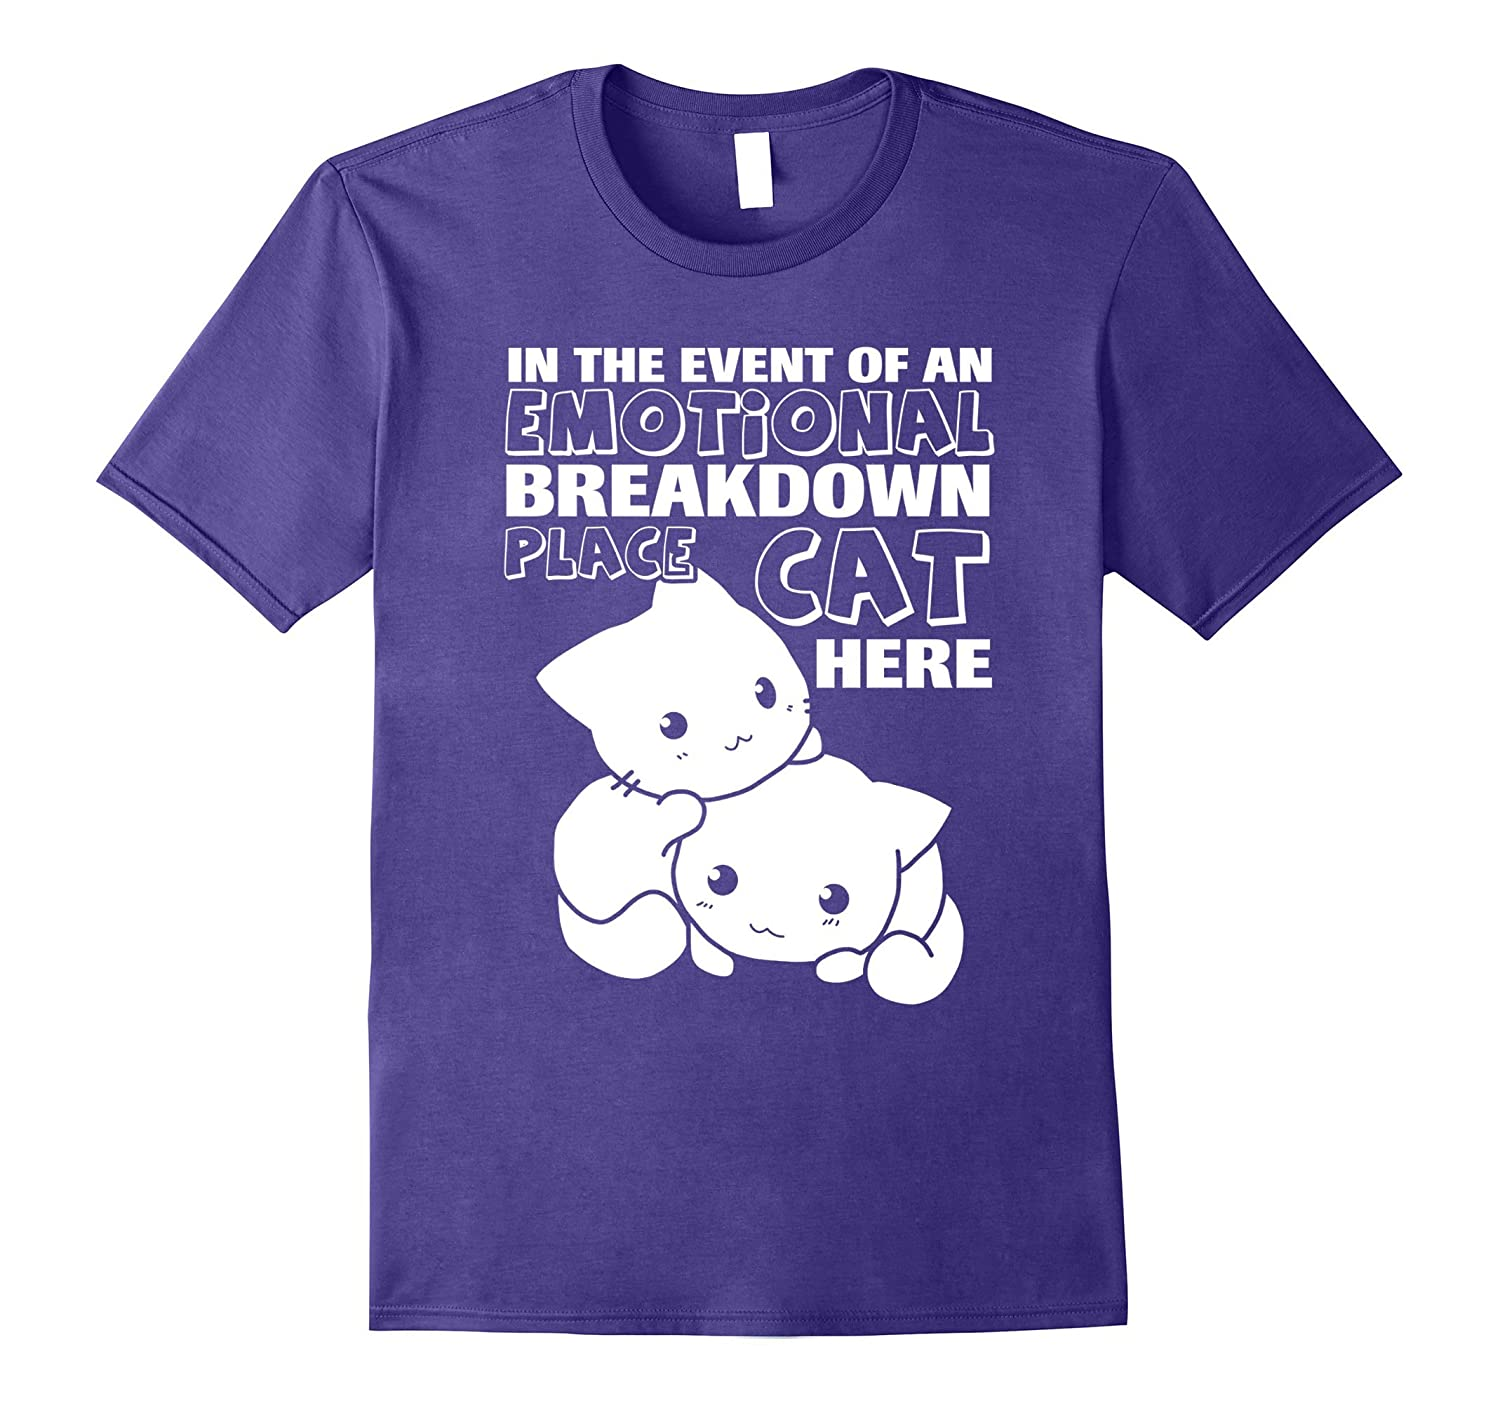 In the even of an emotional breakdown place cat here shirt